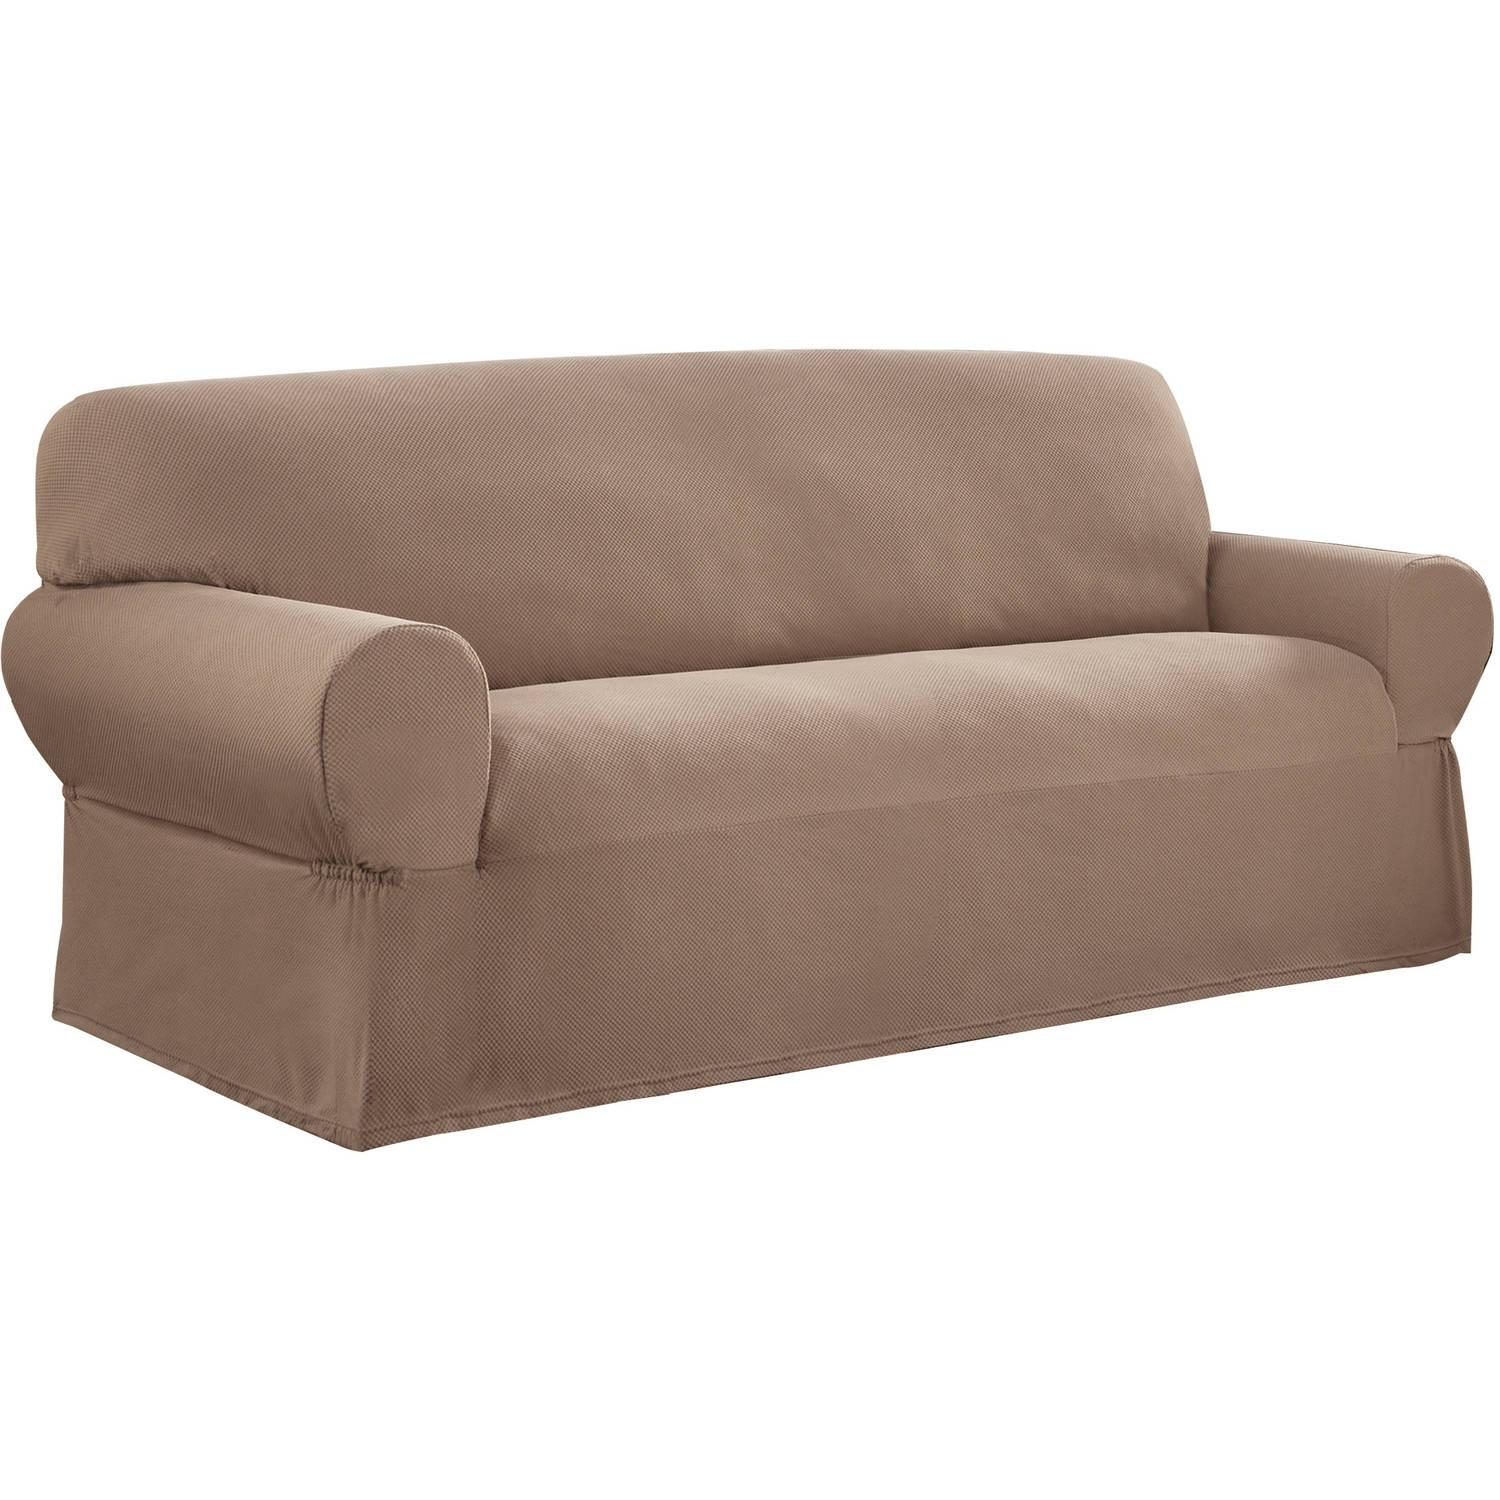 Slipcovers – Walmart Pertaining To Walmart Slipcovers For Sofas (Image 19 of 20)